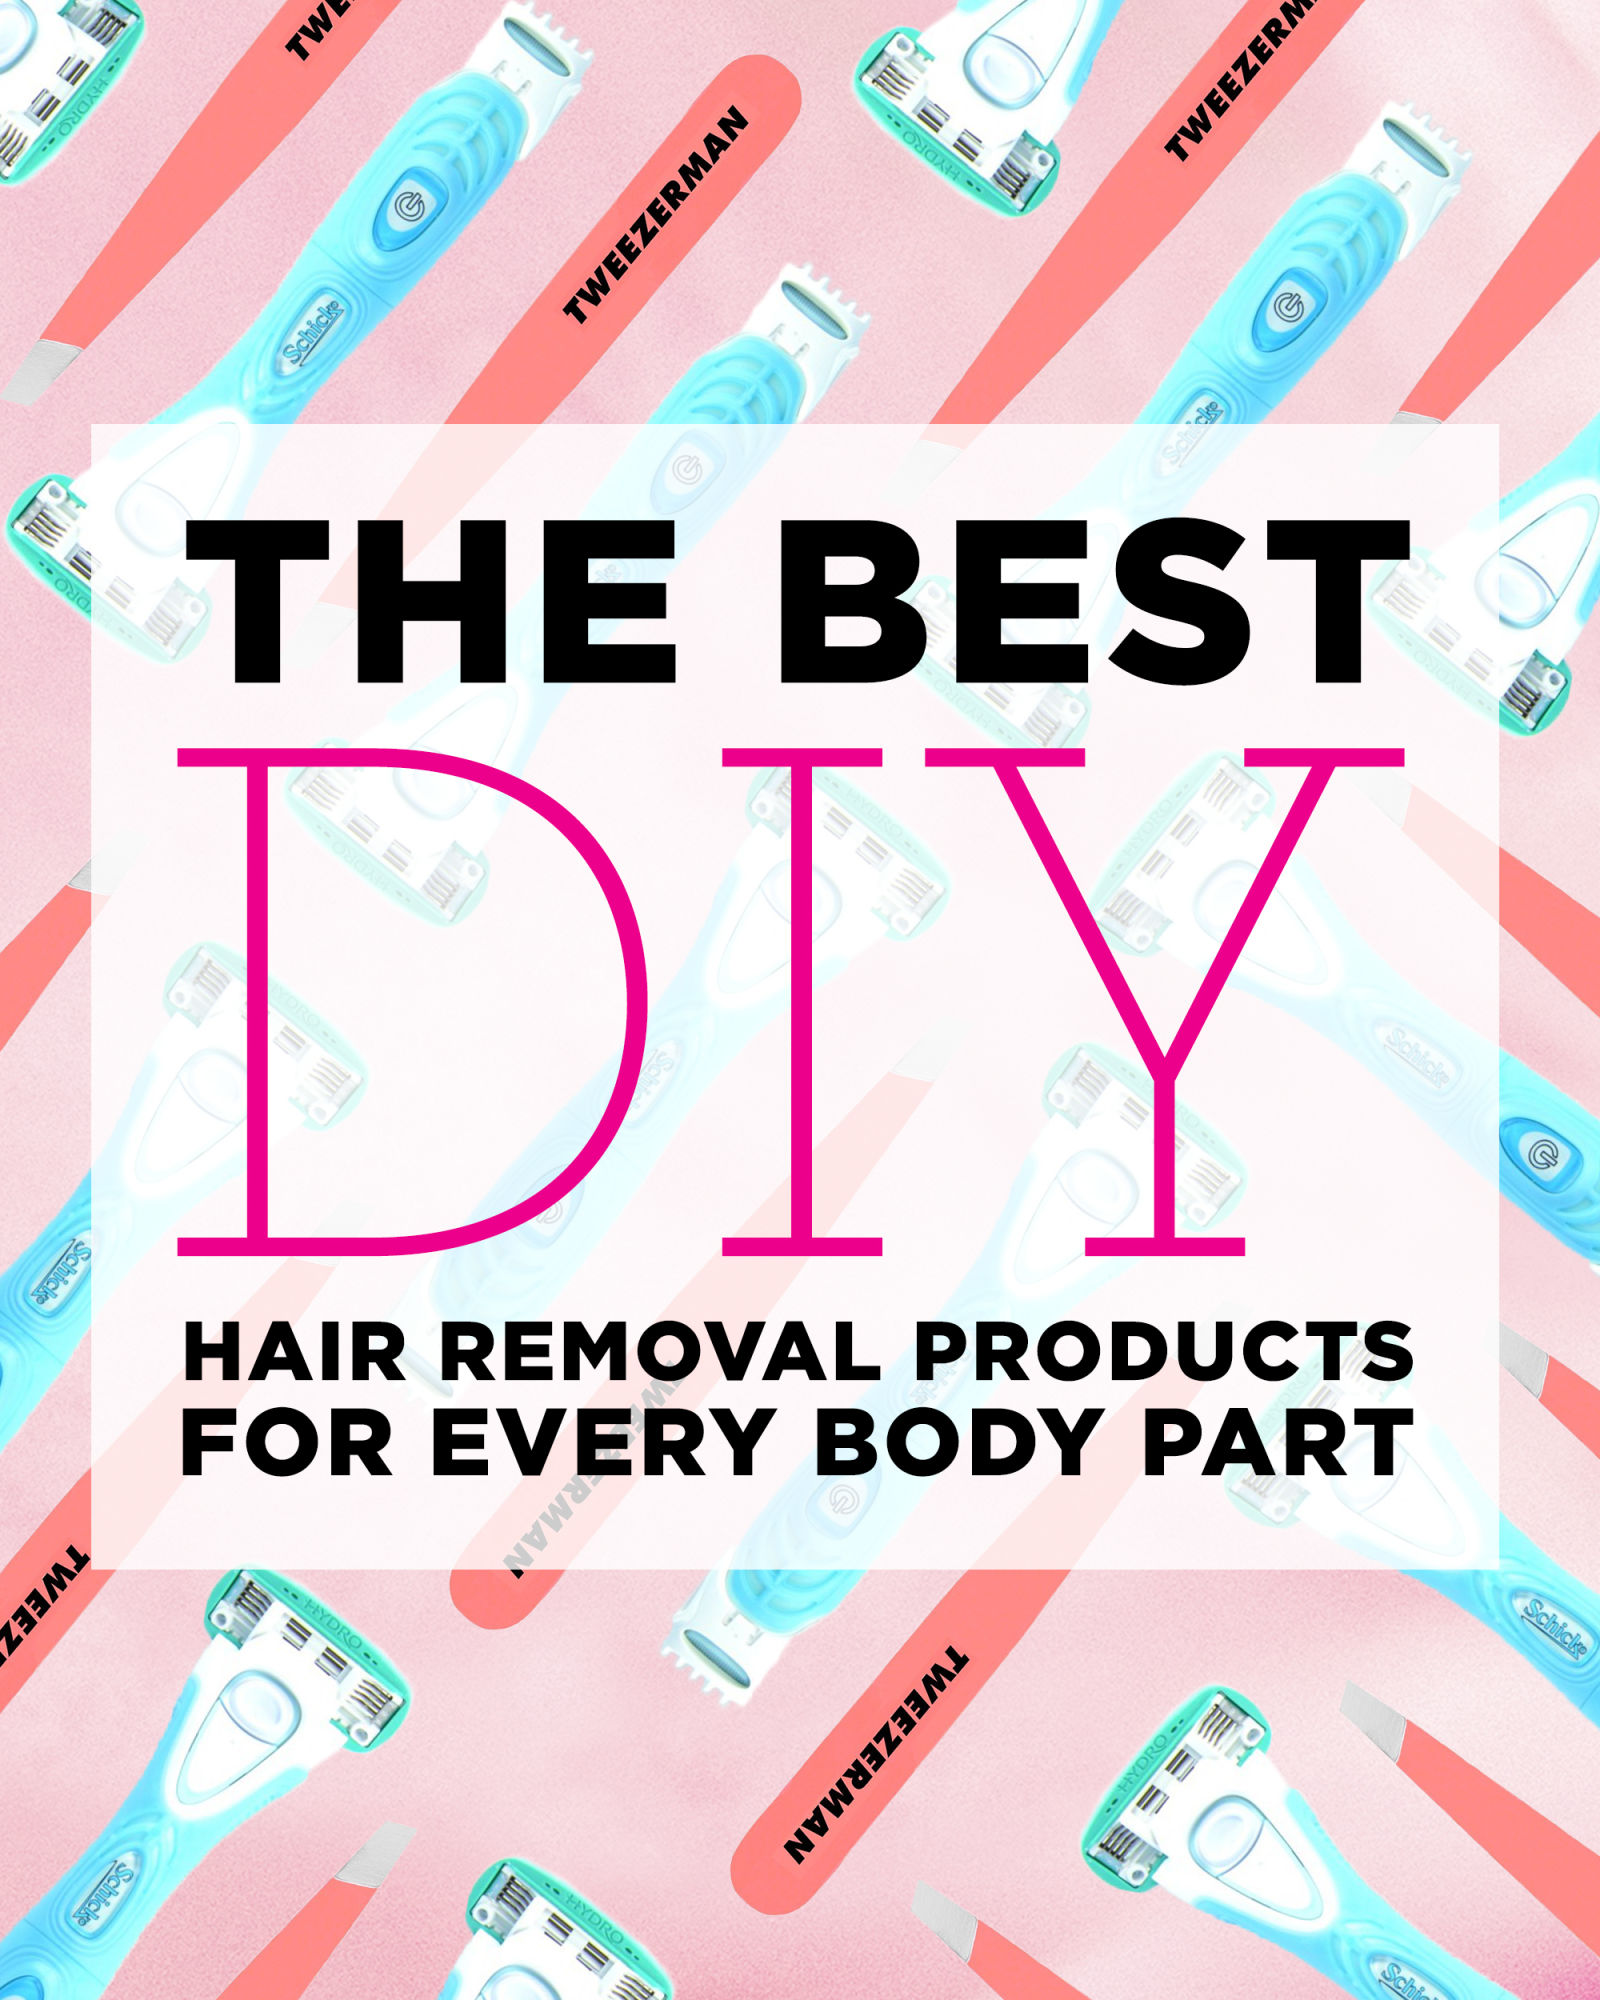 Best hair removal options